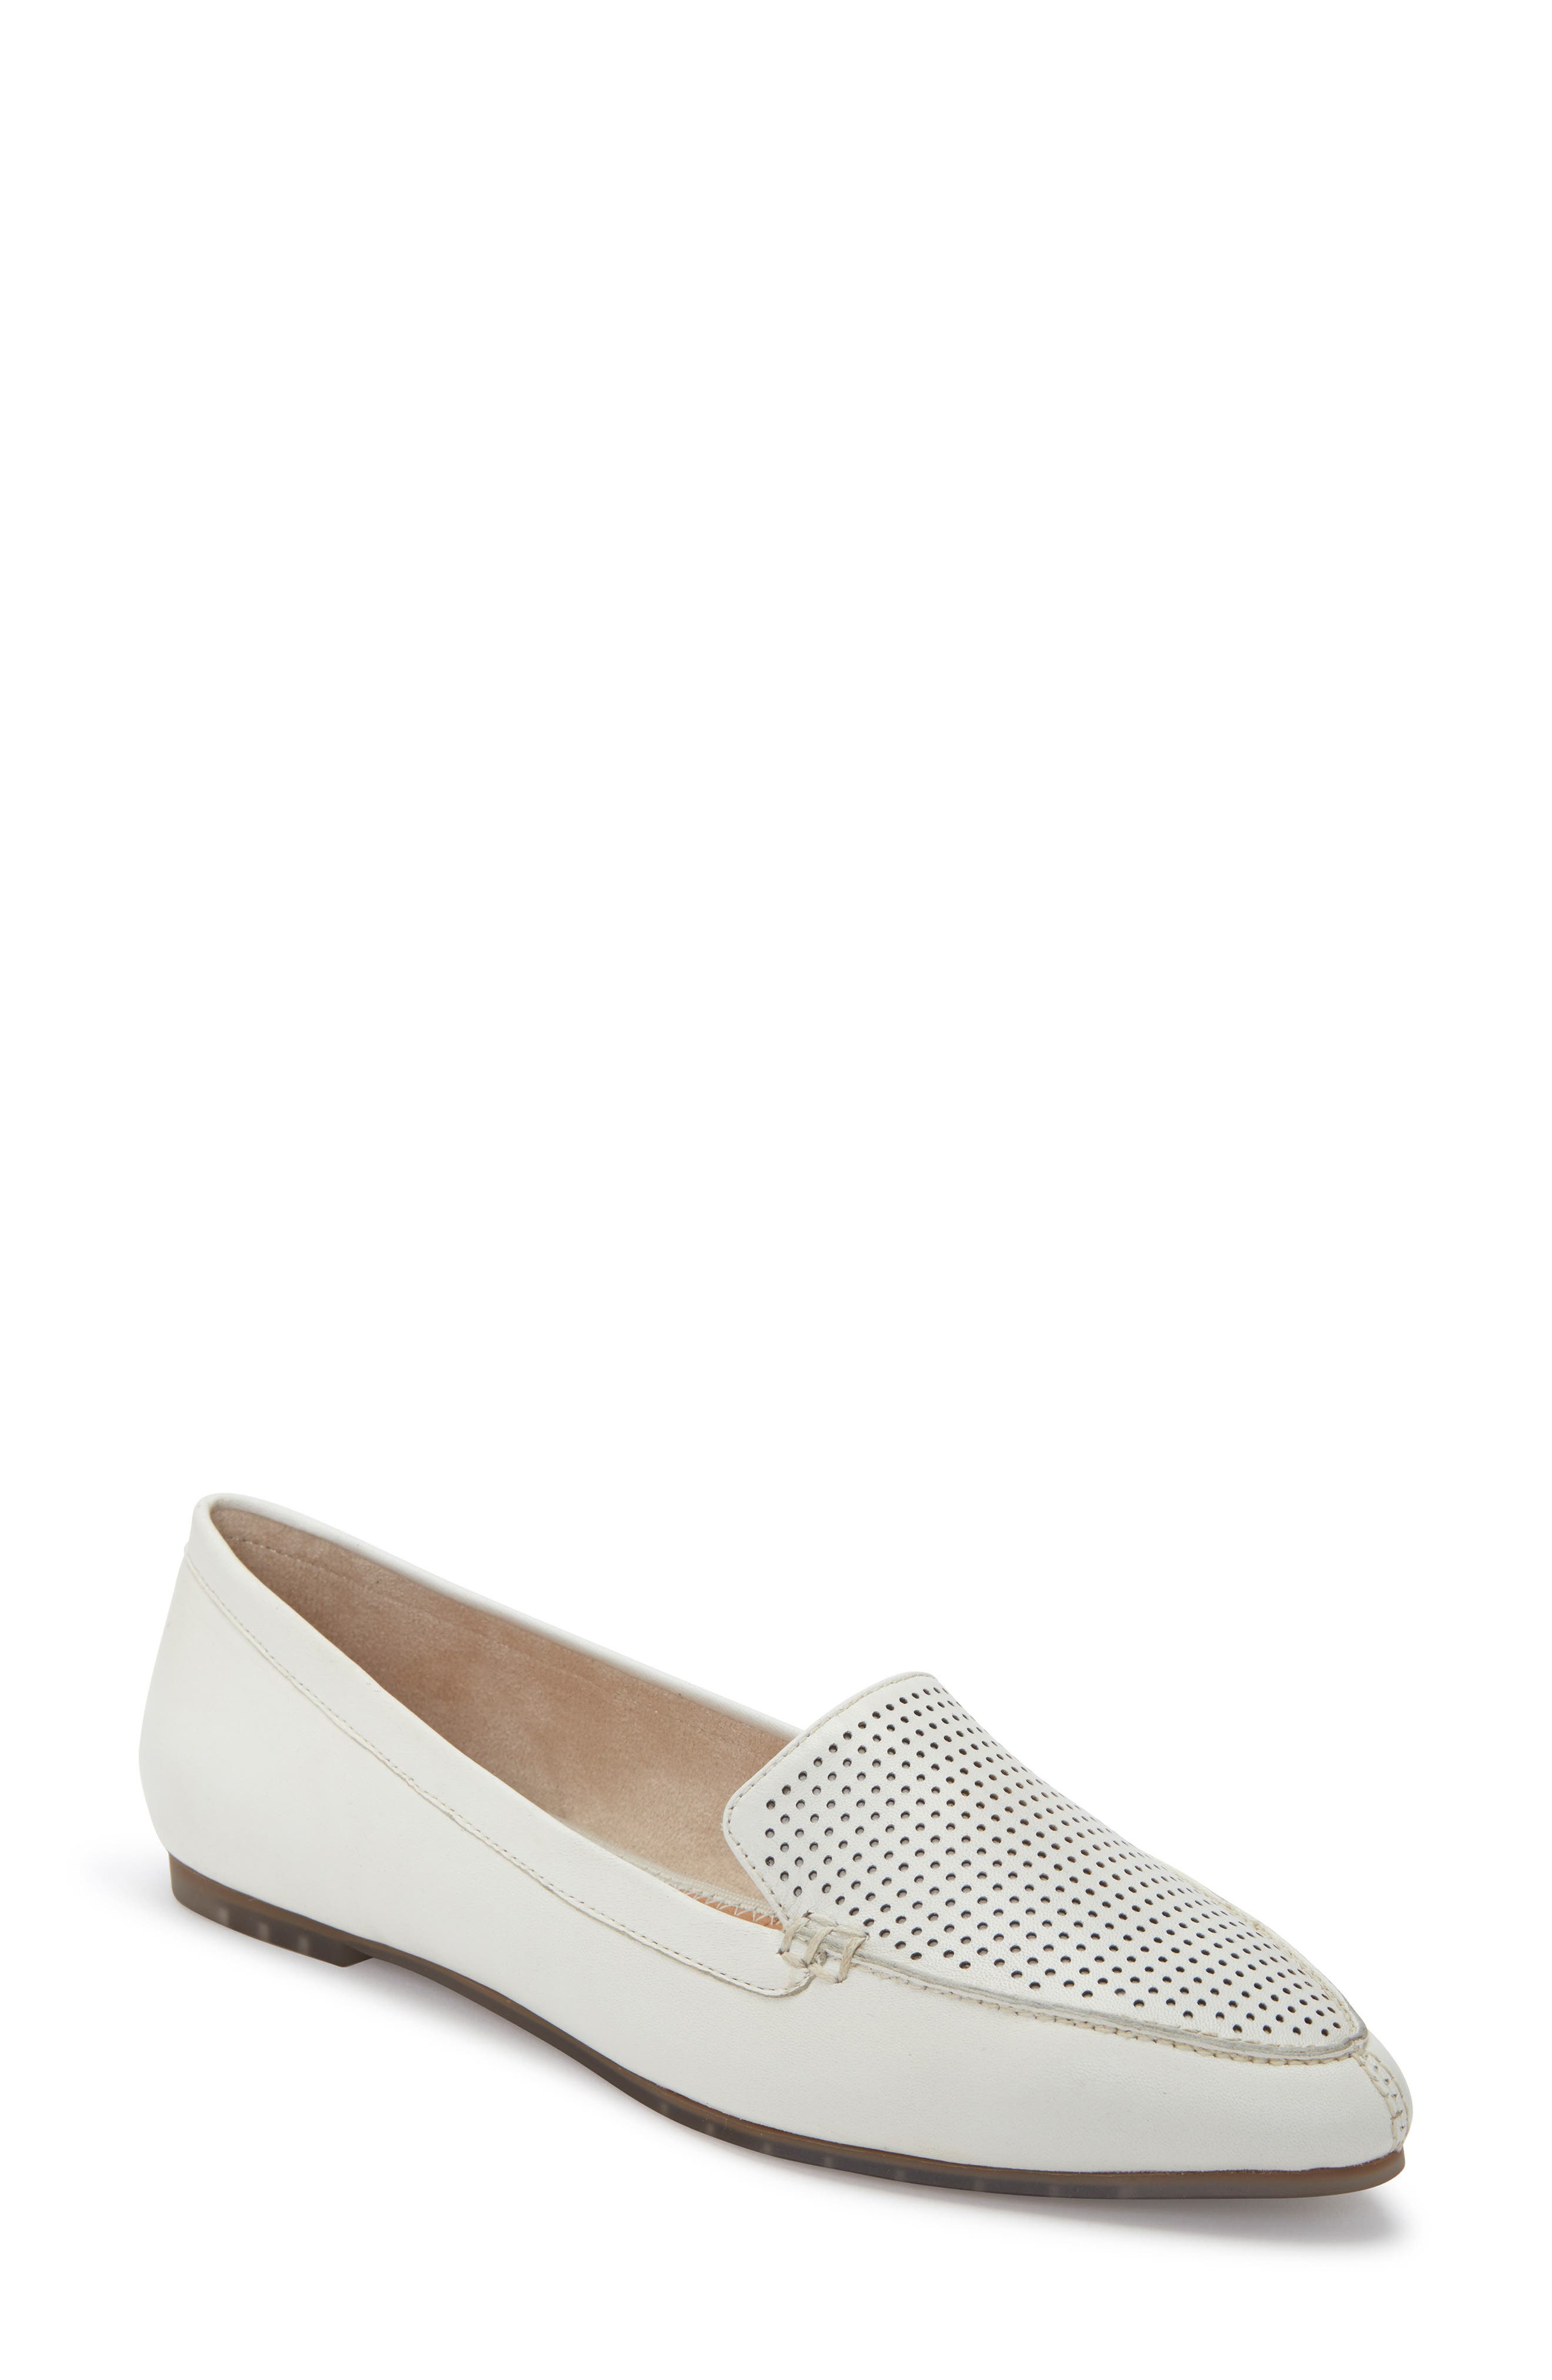 Me Too Alegra Perforated Pointy Toe Loafer, White